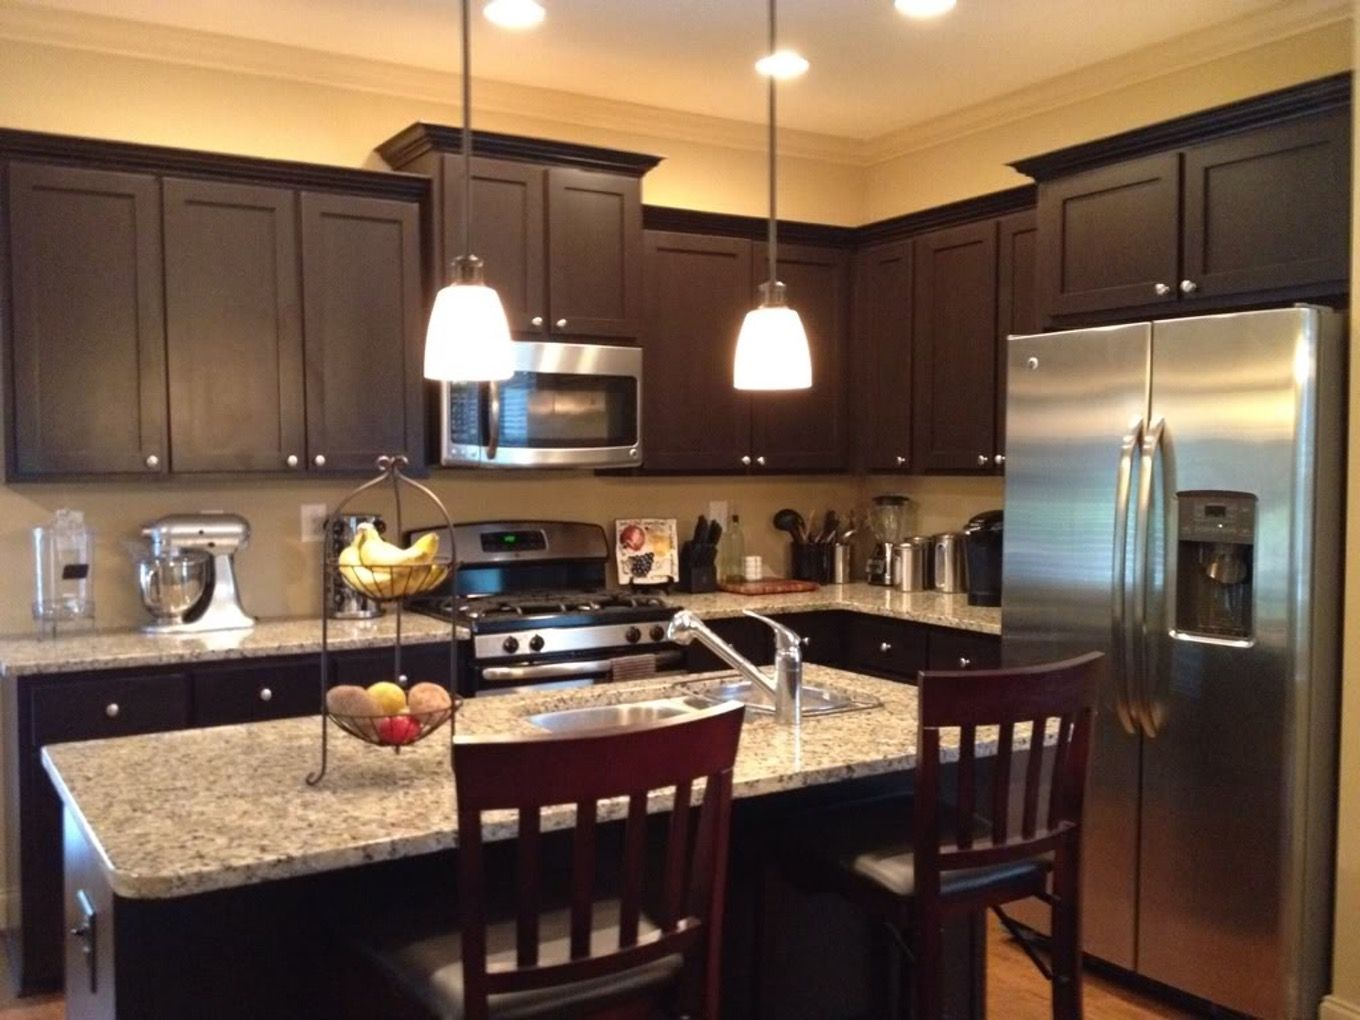 Image Result For Rustic Kitchen Panda Kitchens Home Depot Kitchen Kitchen Cabinets Home Depot Espresso Kitchen Cabinets